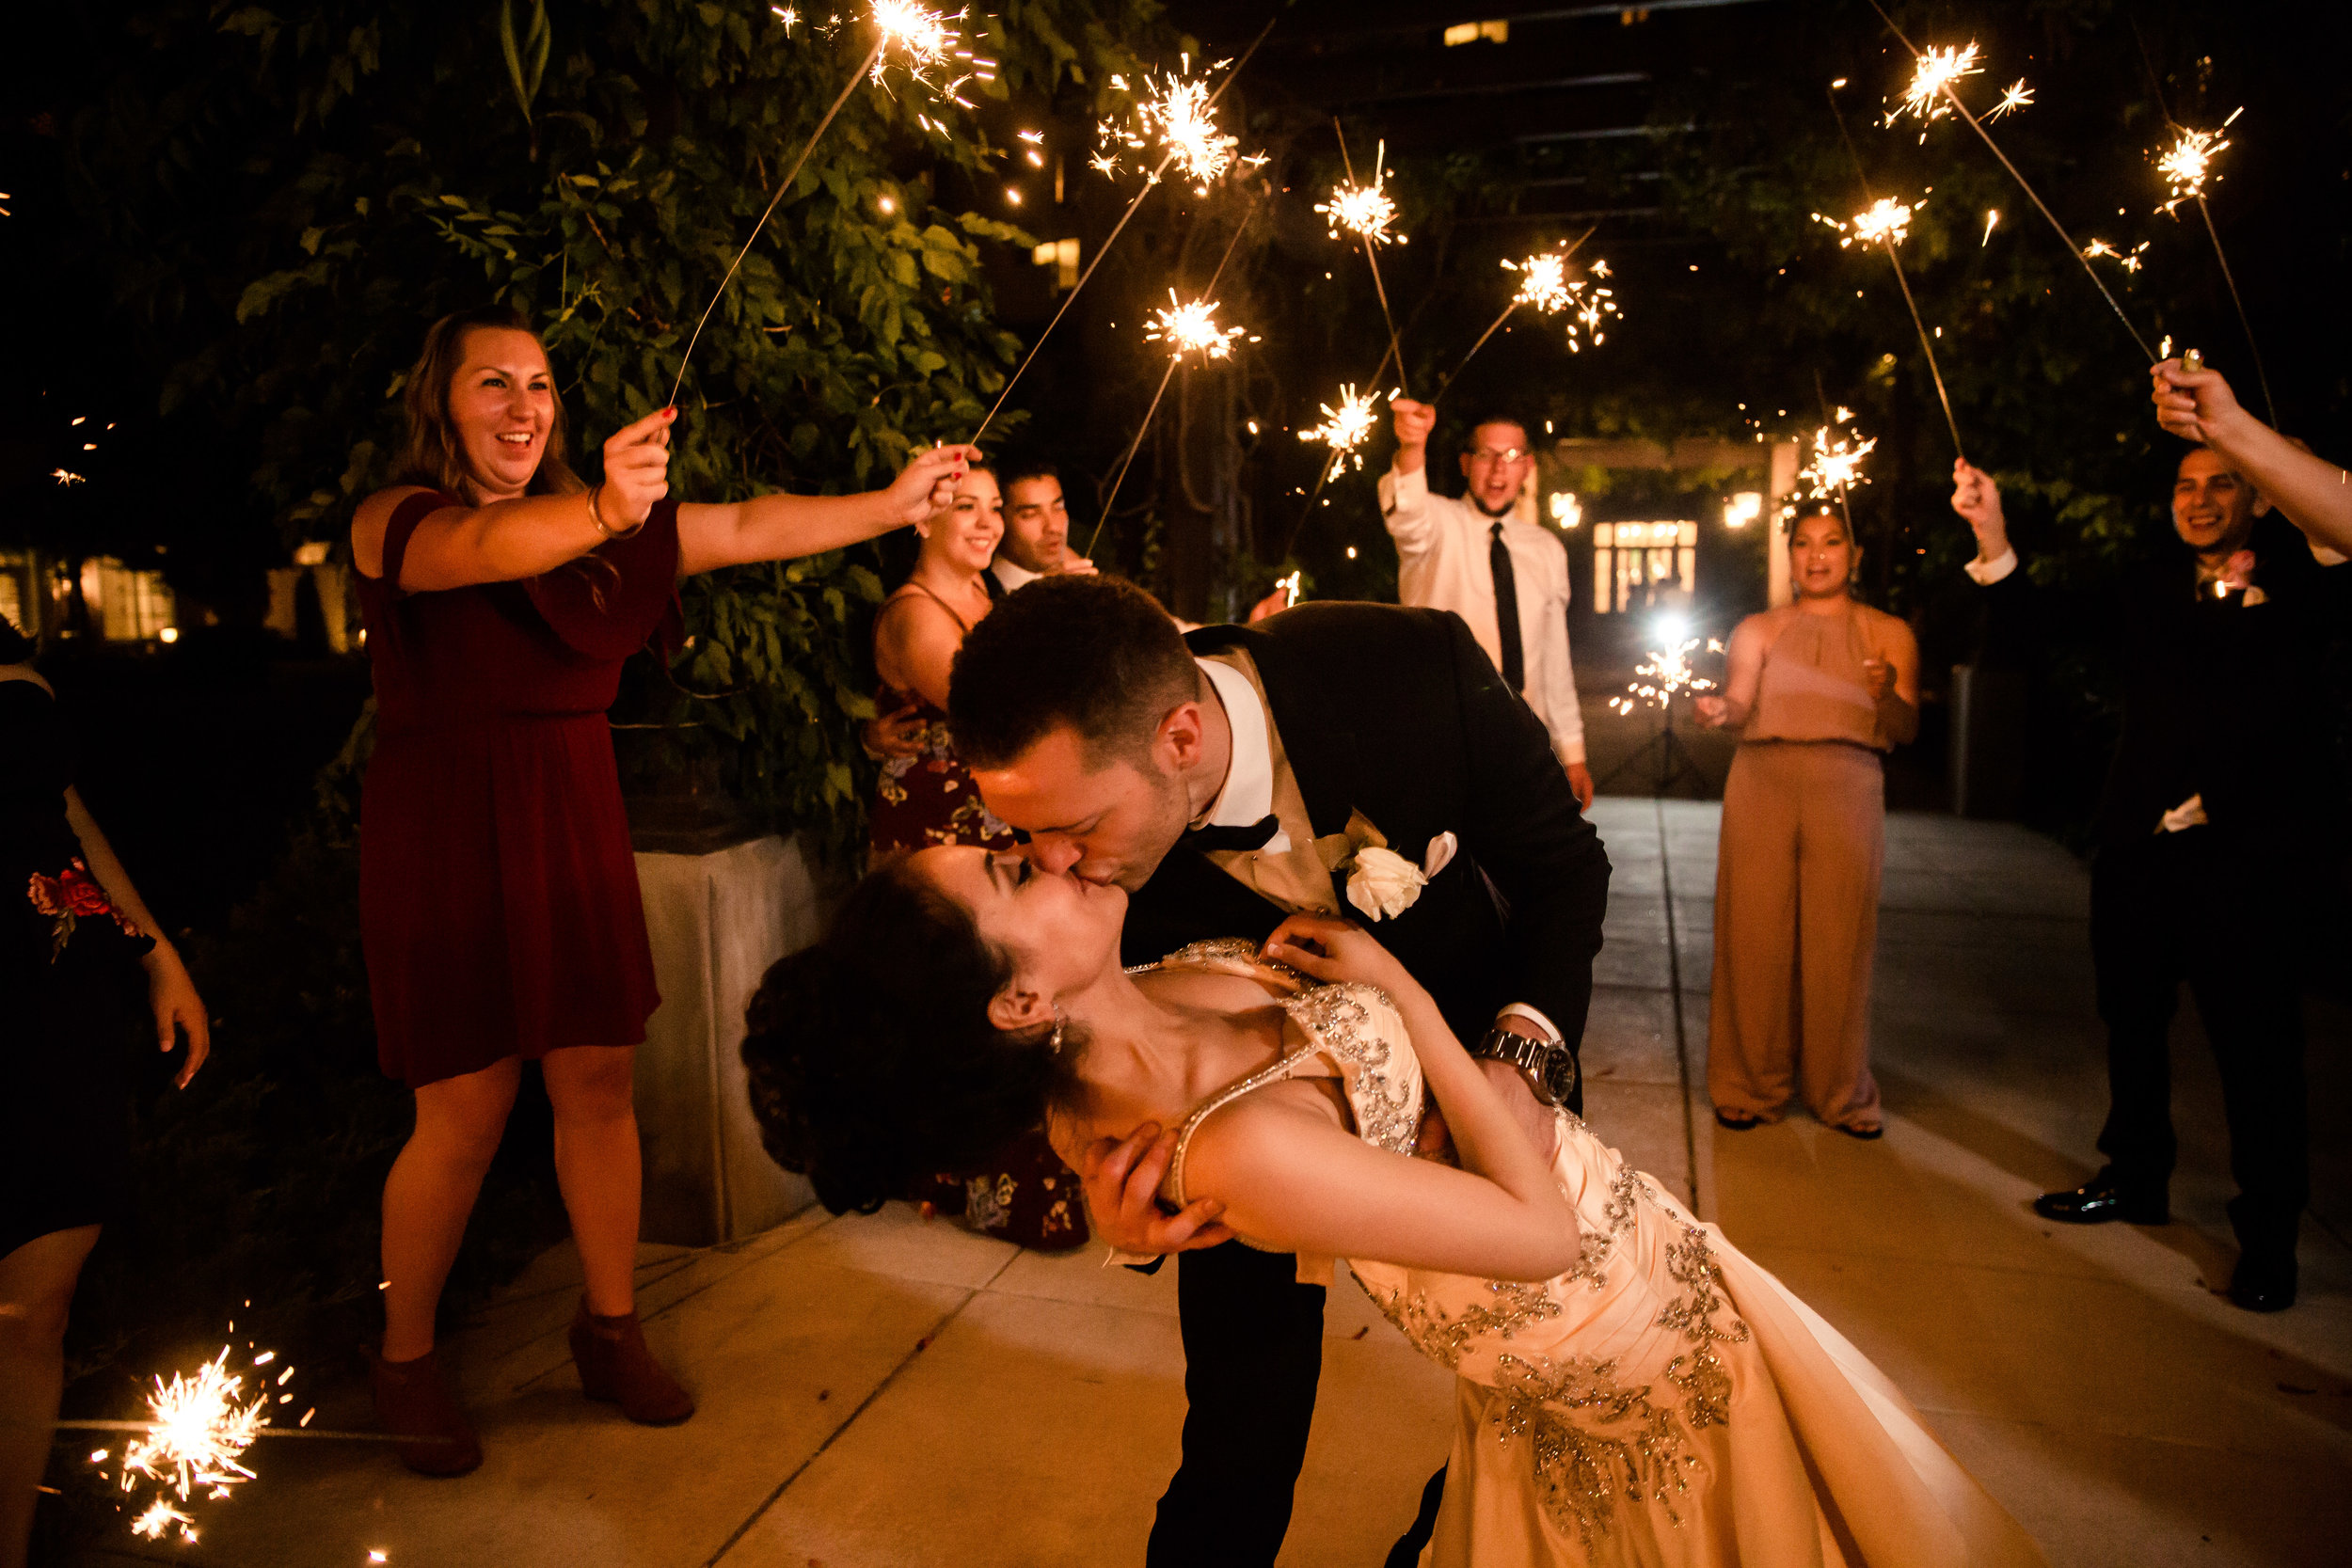 Real Wedding, June 2017  Ellie & Anthony Romero  Photographer: Talitha Tarro  Styling/Décor: Black Swan  Venue: Hotel Albuquerque, Hotel Chaco, Albuquerque, New Mexico  Group Hair & Makeup & Hair for Bride: C. Johnson Makeup